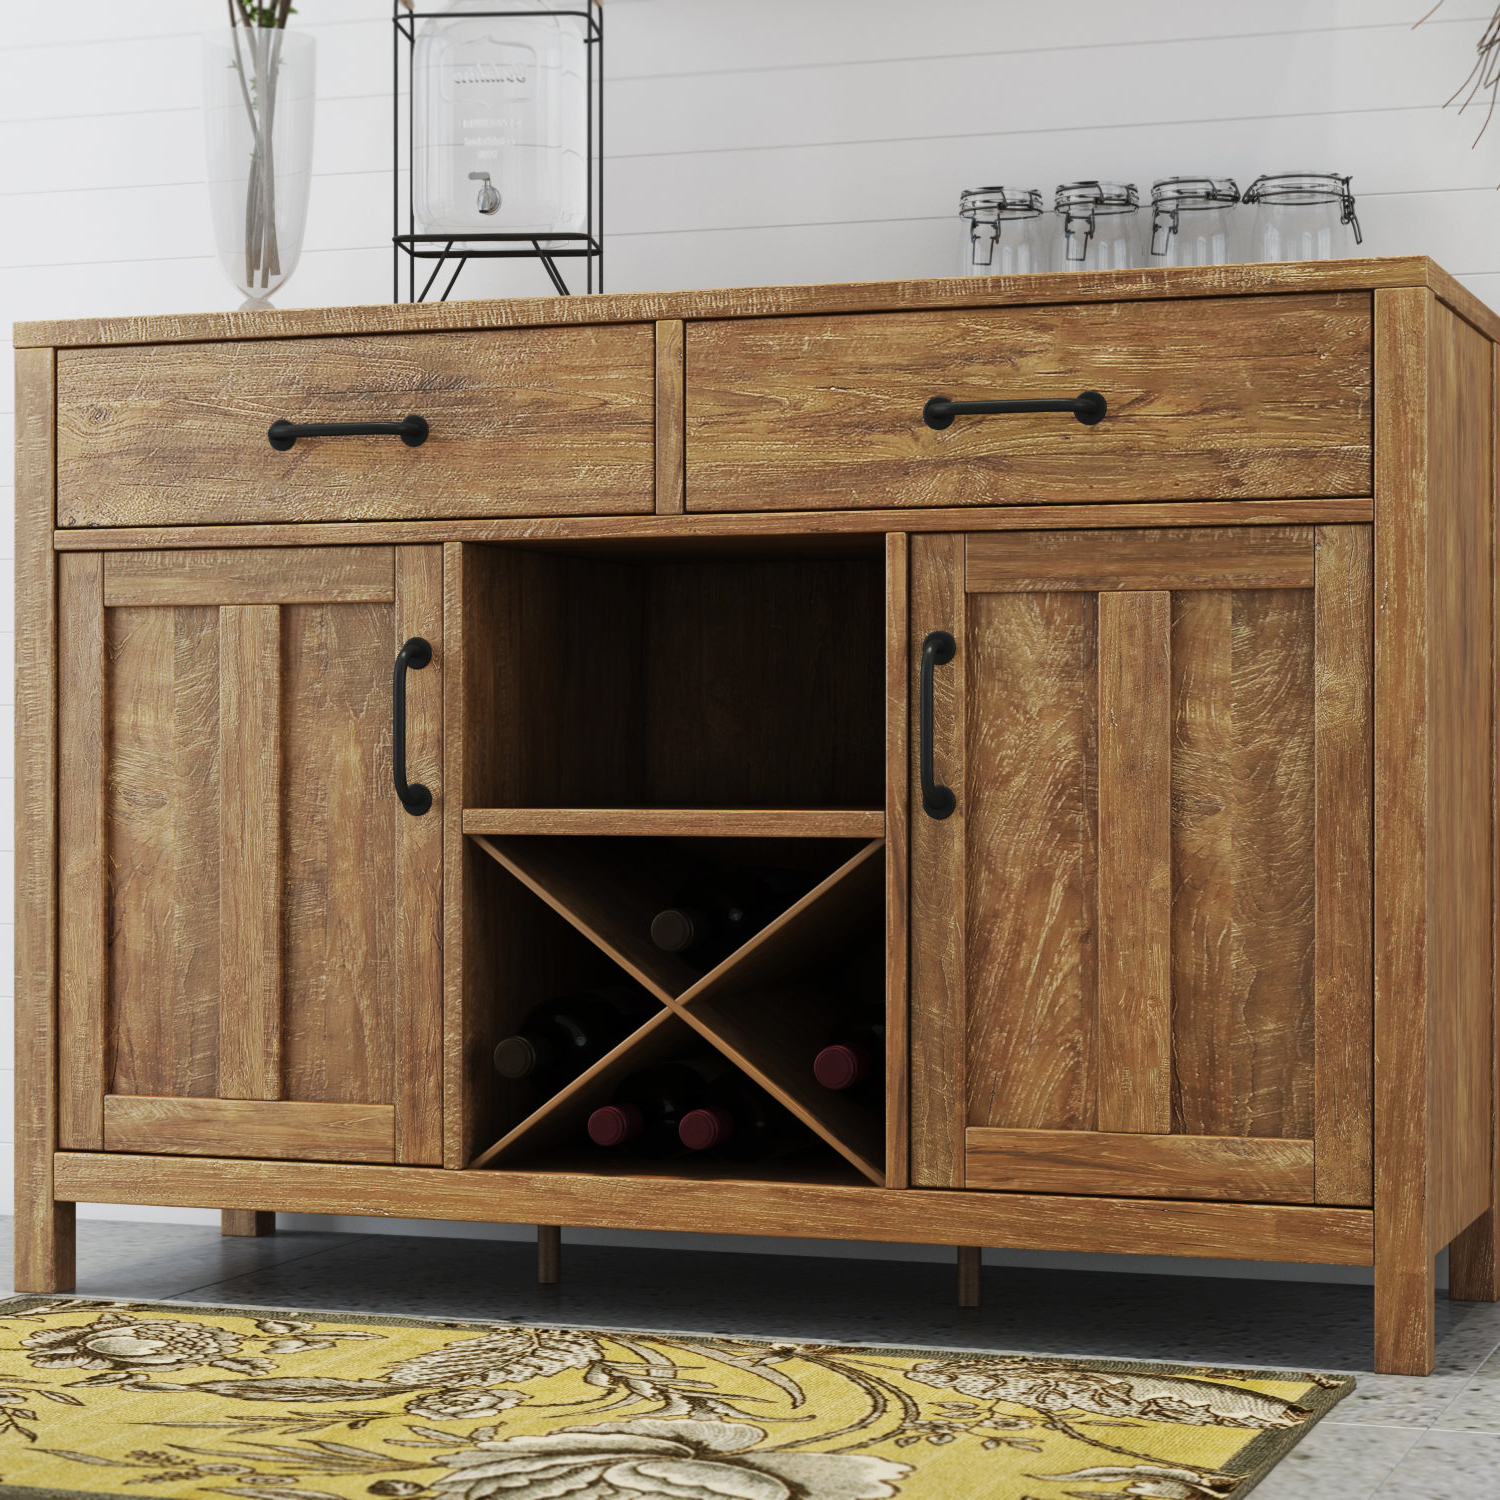 Lighted Sideboard   Wayfair With Regard To Shoreland Sideboards (View 11 of 20)